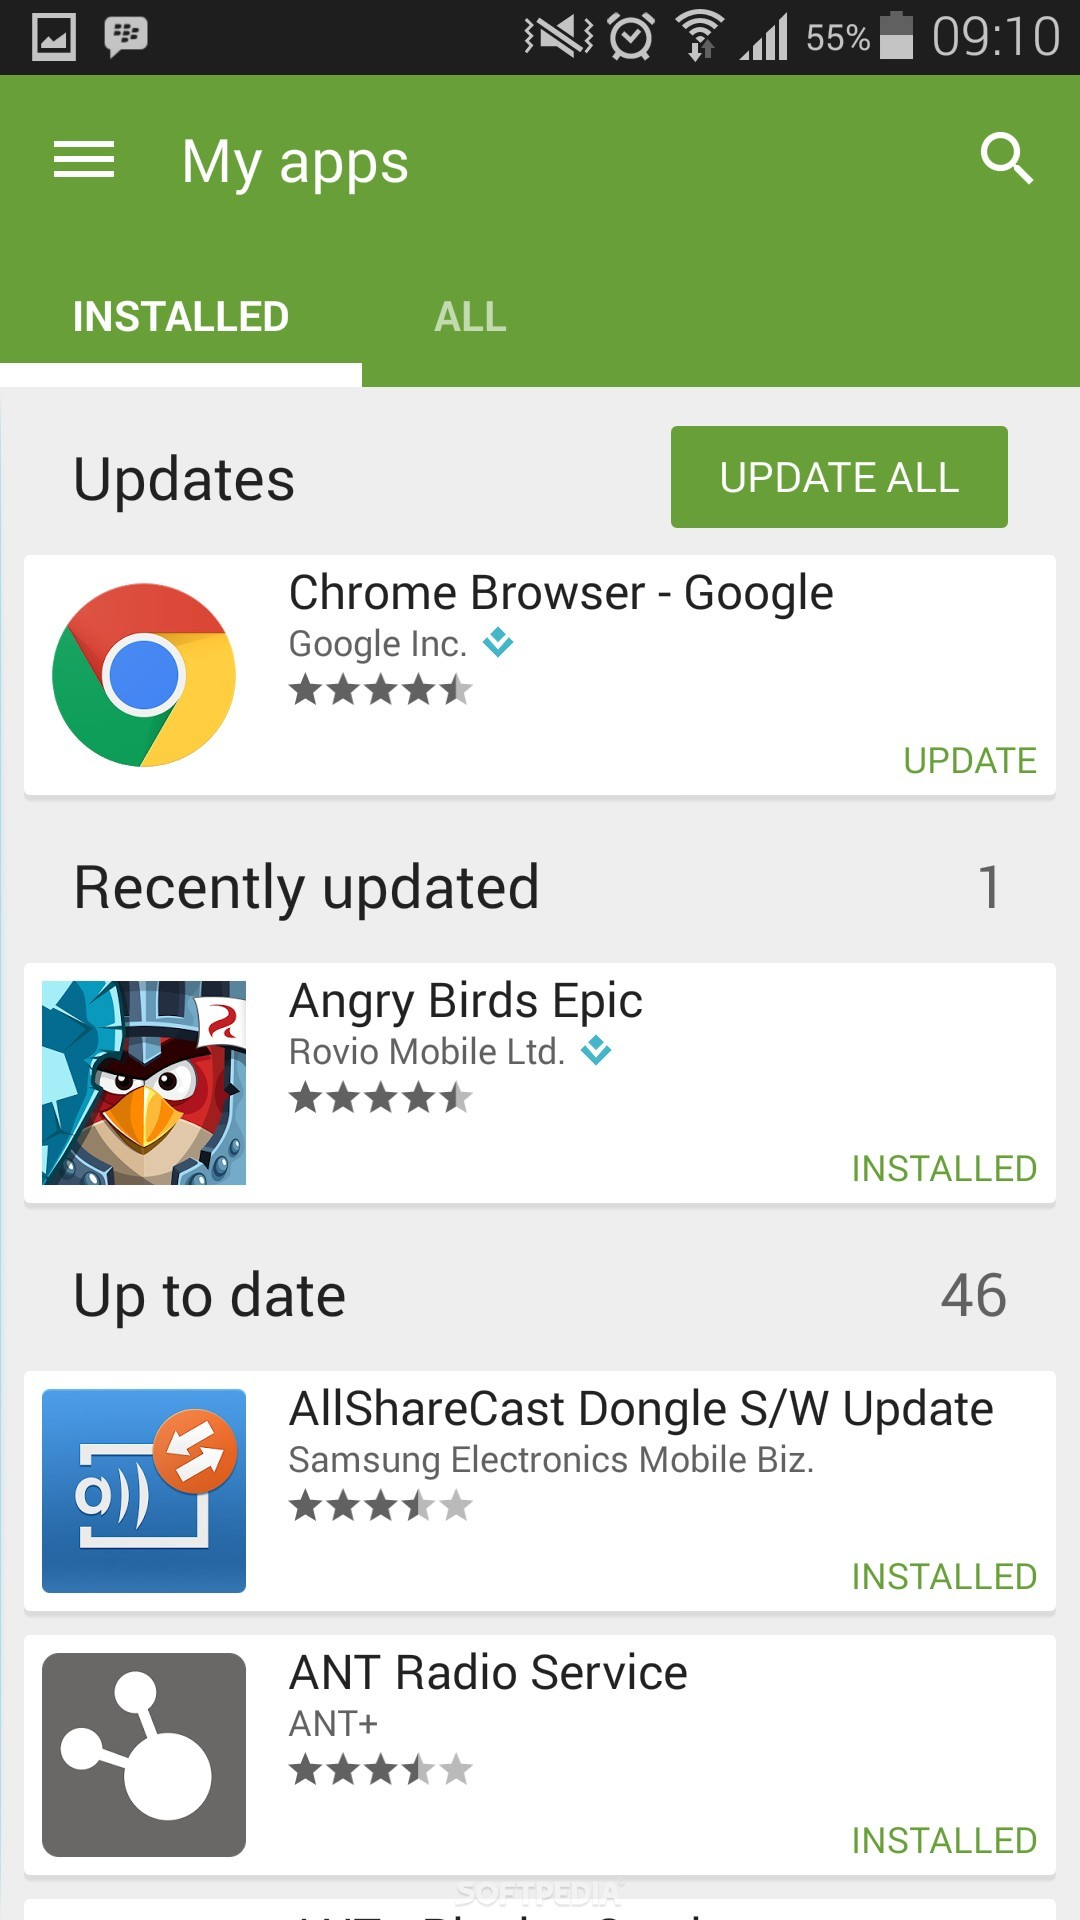 An indispensable app for keeping your apps updated